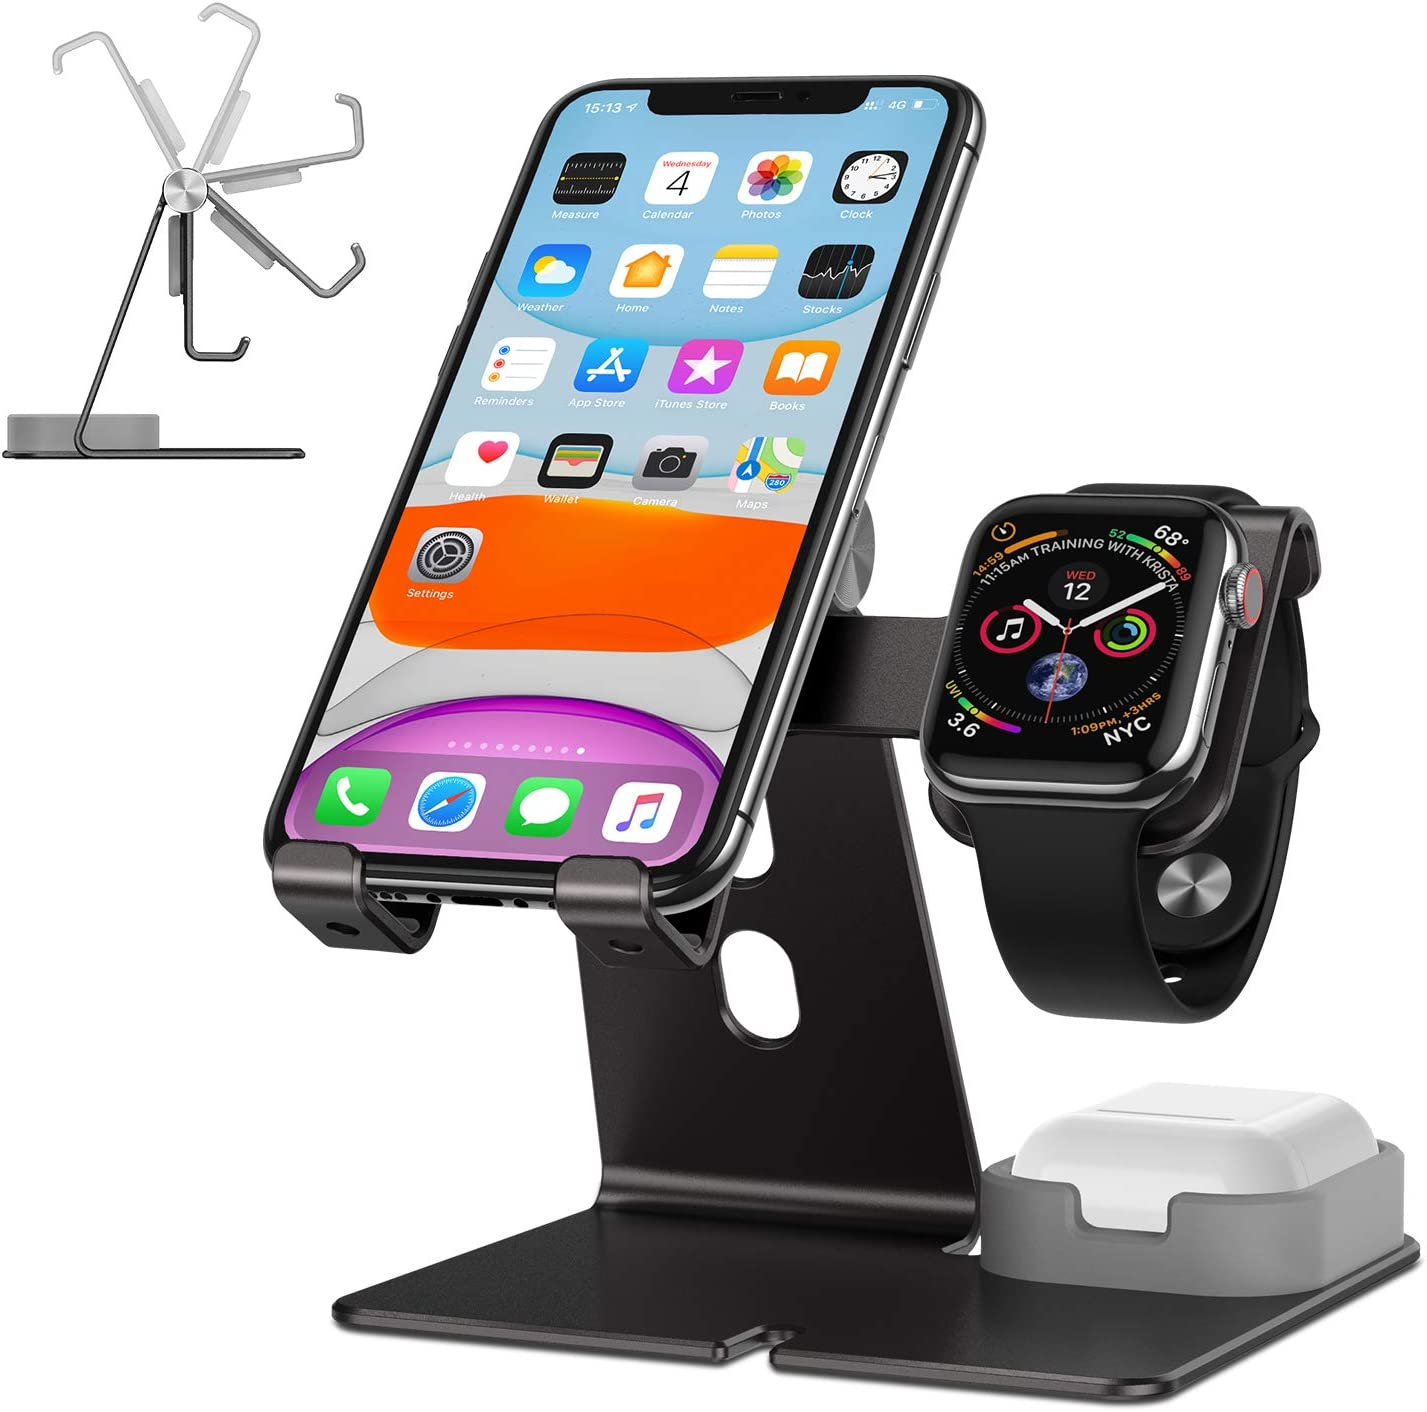 Apple Watch Stand - OMOTON Cell Phone Stand for Airpods, 3 in 1 Adjustable Charging Dock for Airpods 1/2, Apple Watch 5/4/3/2/1 and iPhone 11/11 Pro/11 Pro Max/XR/Xs/Xs Max, Black